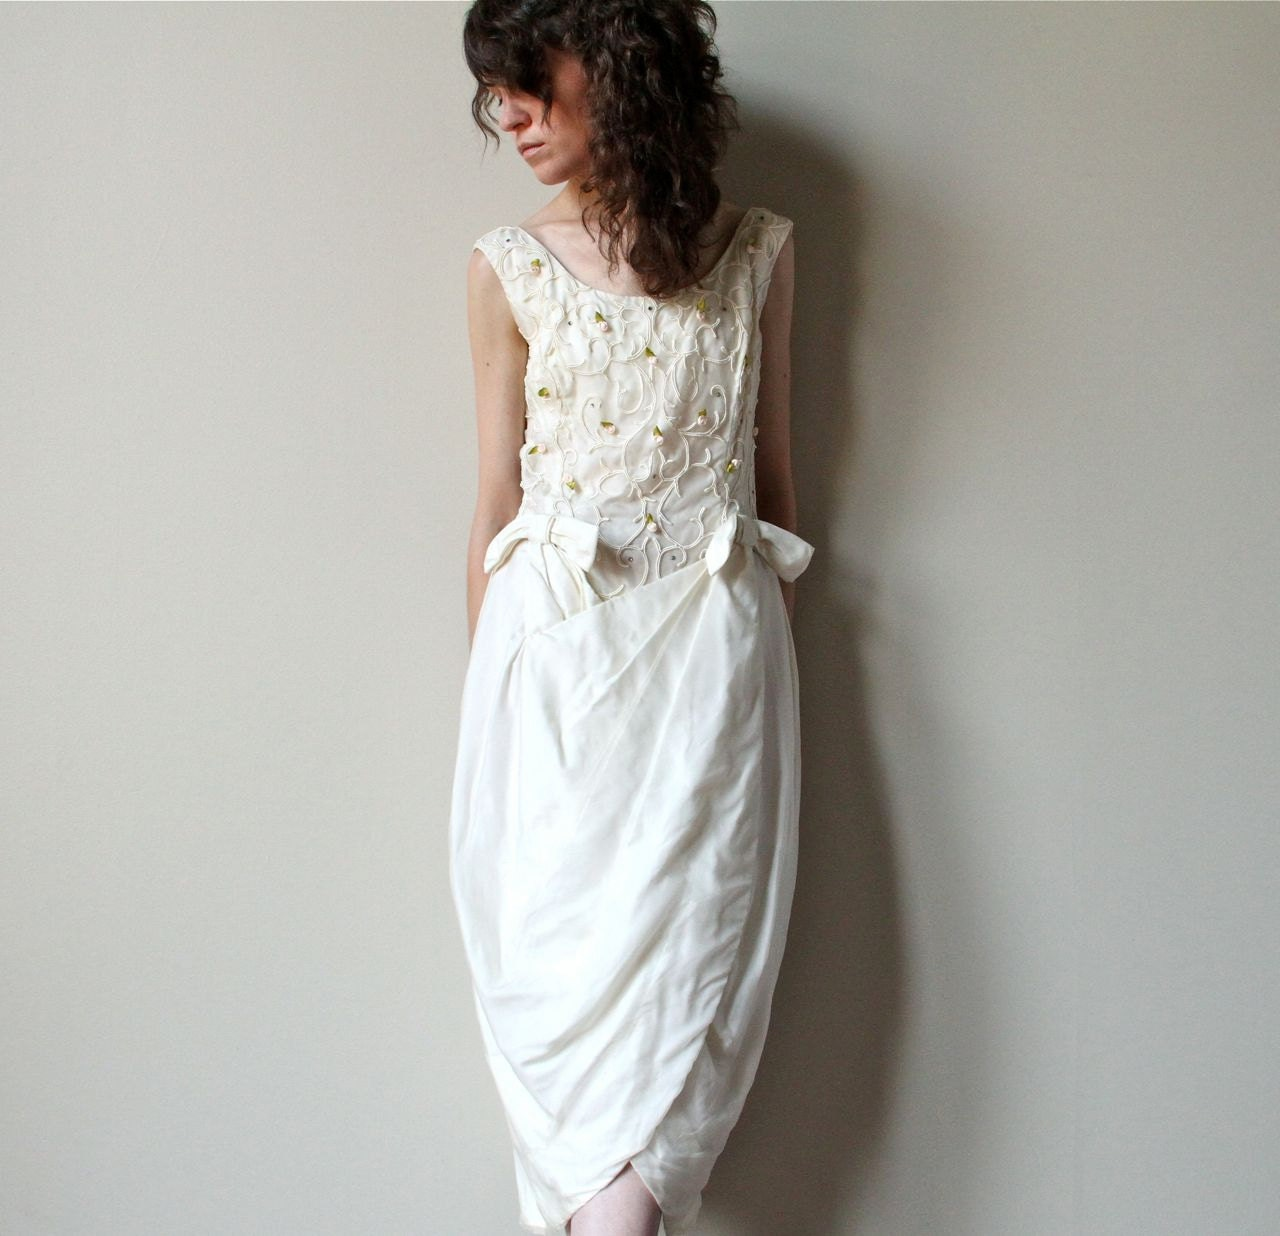 60s mod wedding dress avant garde wiggle fit party frock for 60s style wedding dresses